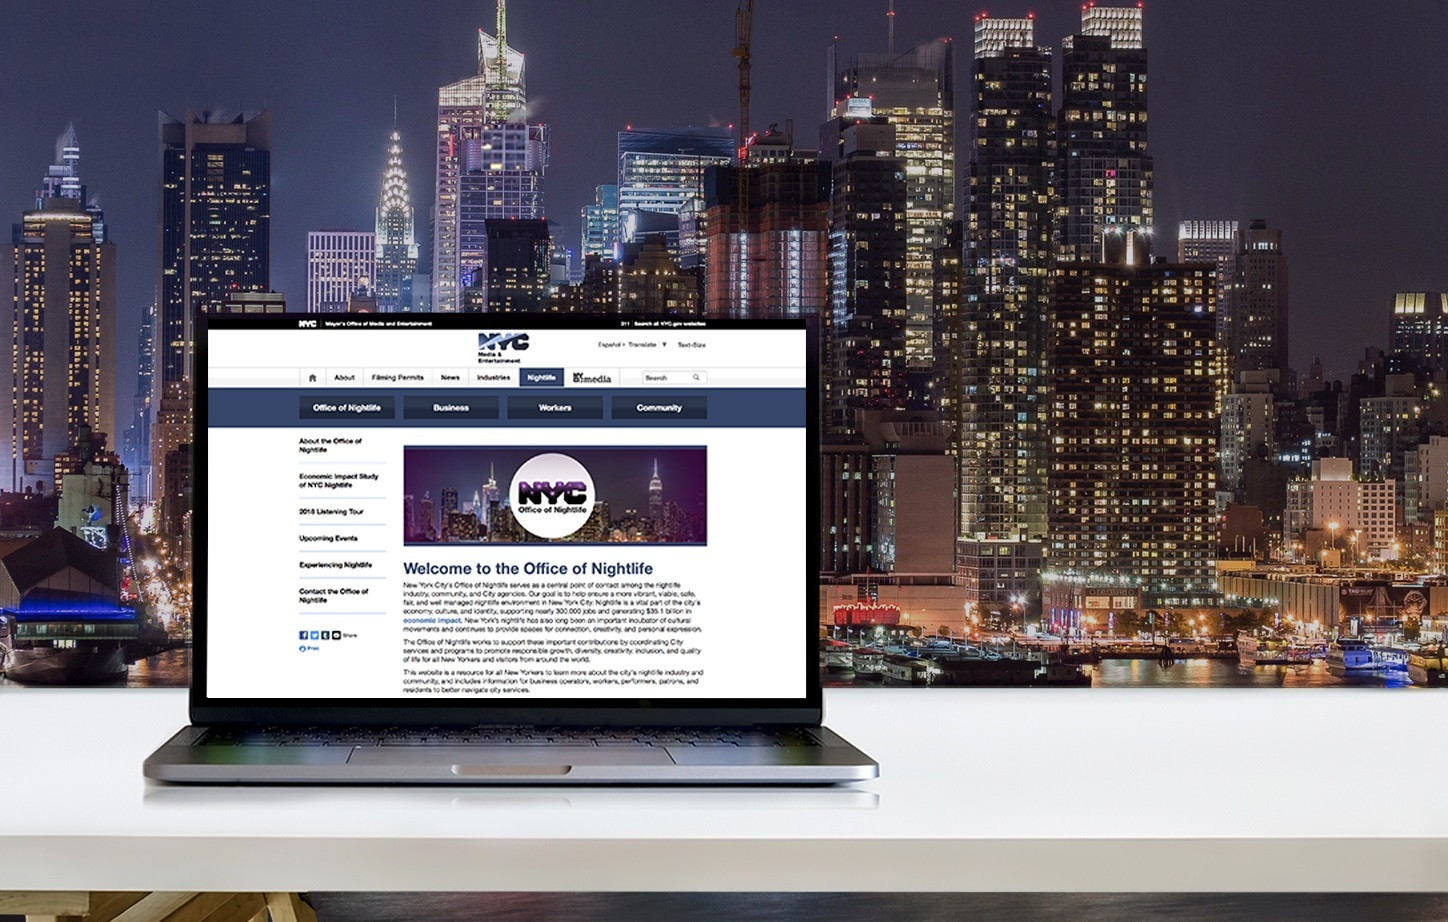 New Office Of Nightlife Website Has Launched